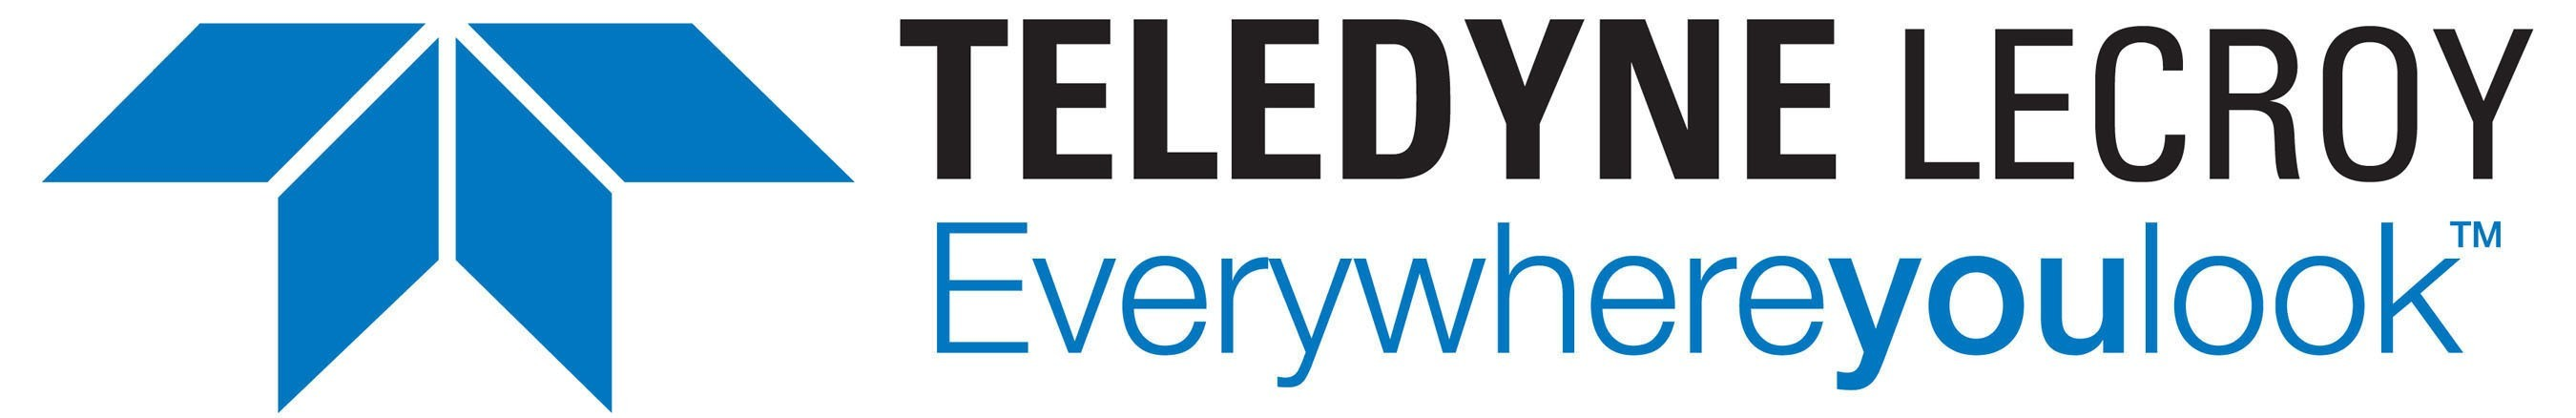 teledyne lecroy adds cellular testing for connected cars